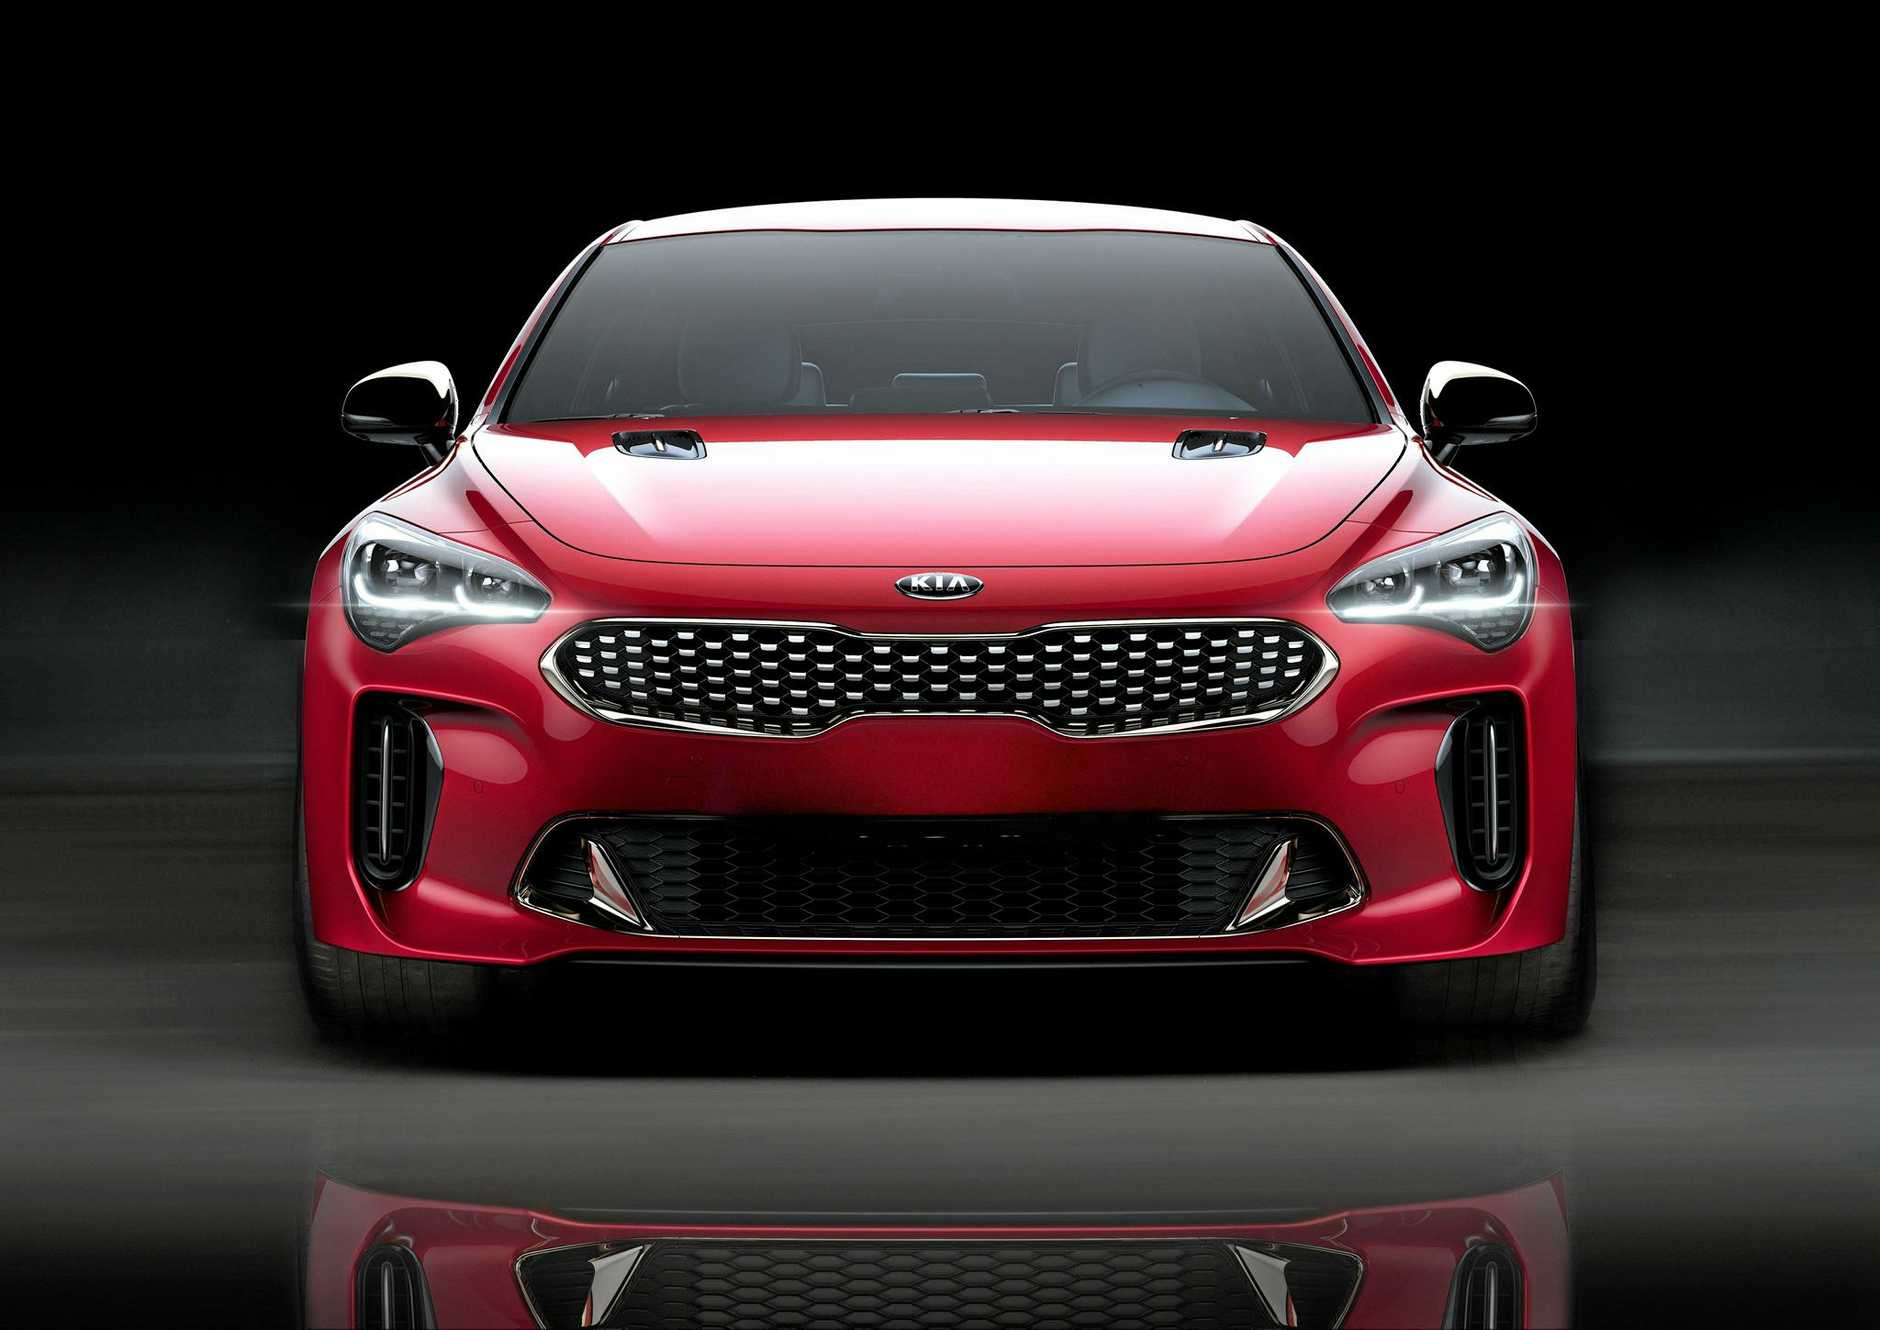 Kia is about to officially unveil the Kia Stinger GT.